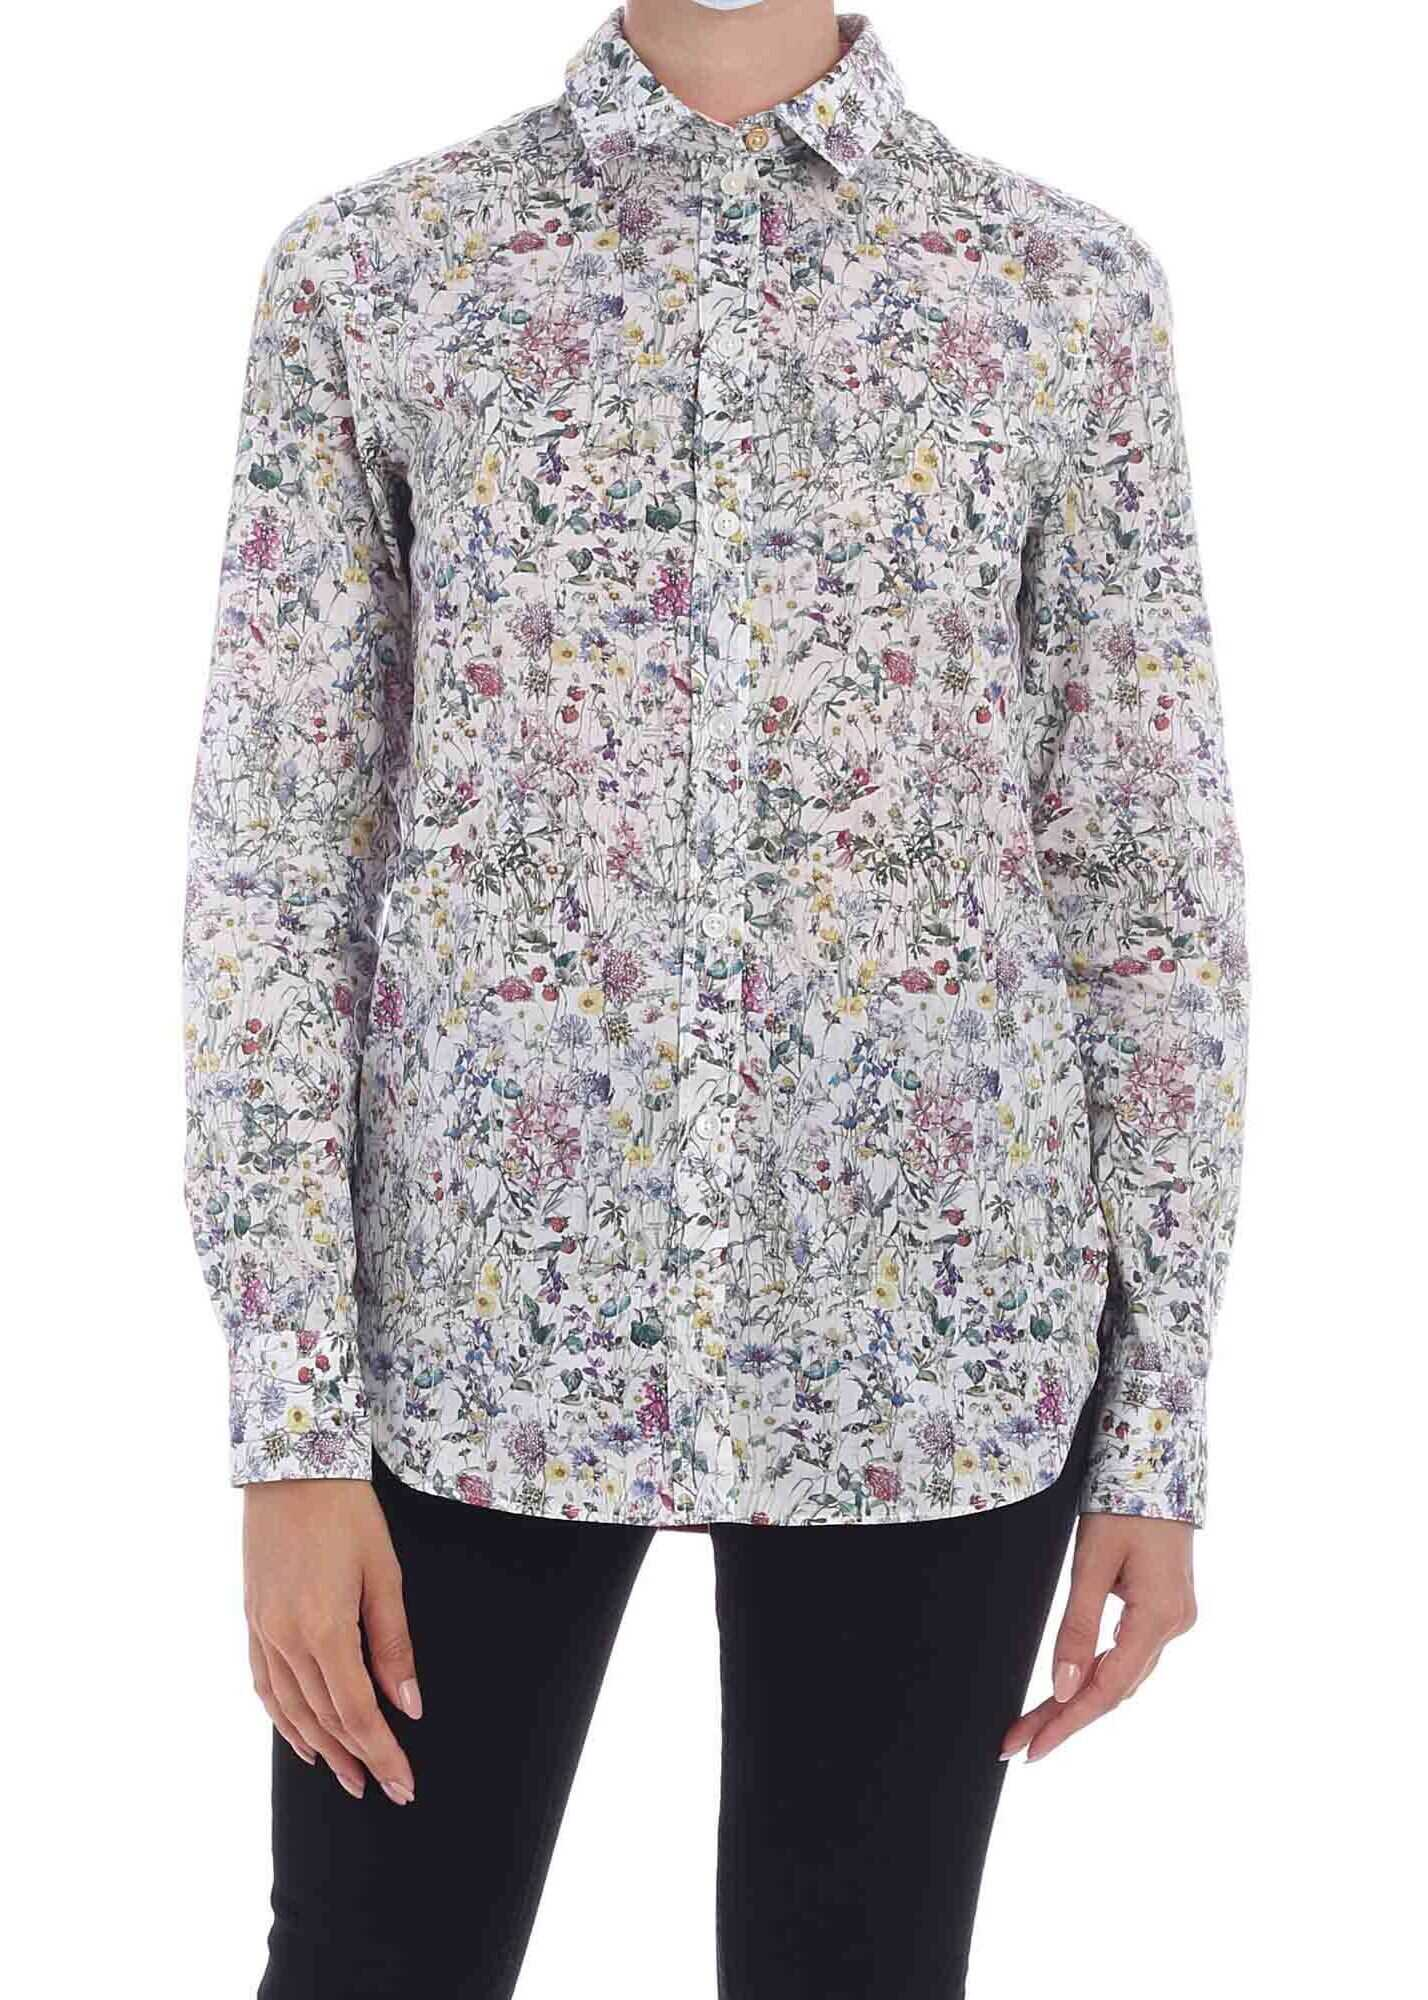 Paul Smith Liberty Floral Print Multicolor Shirt White